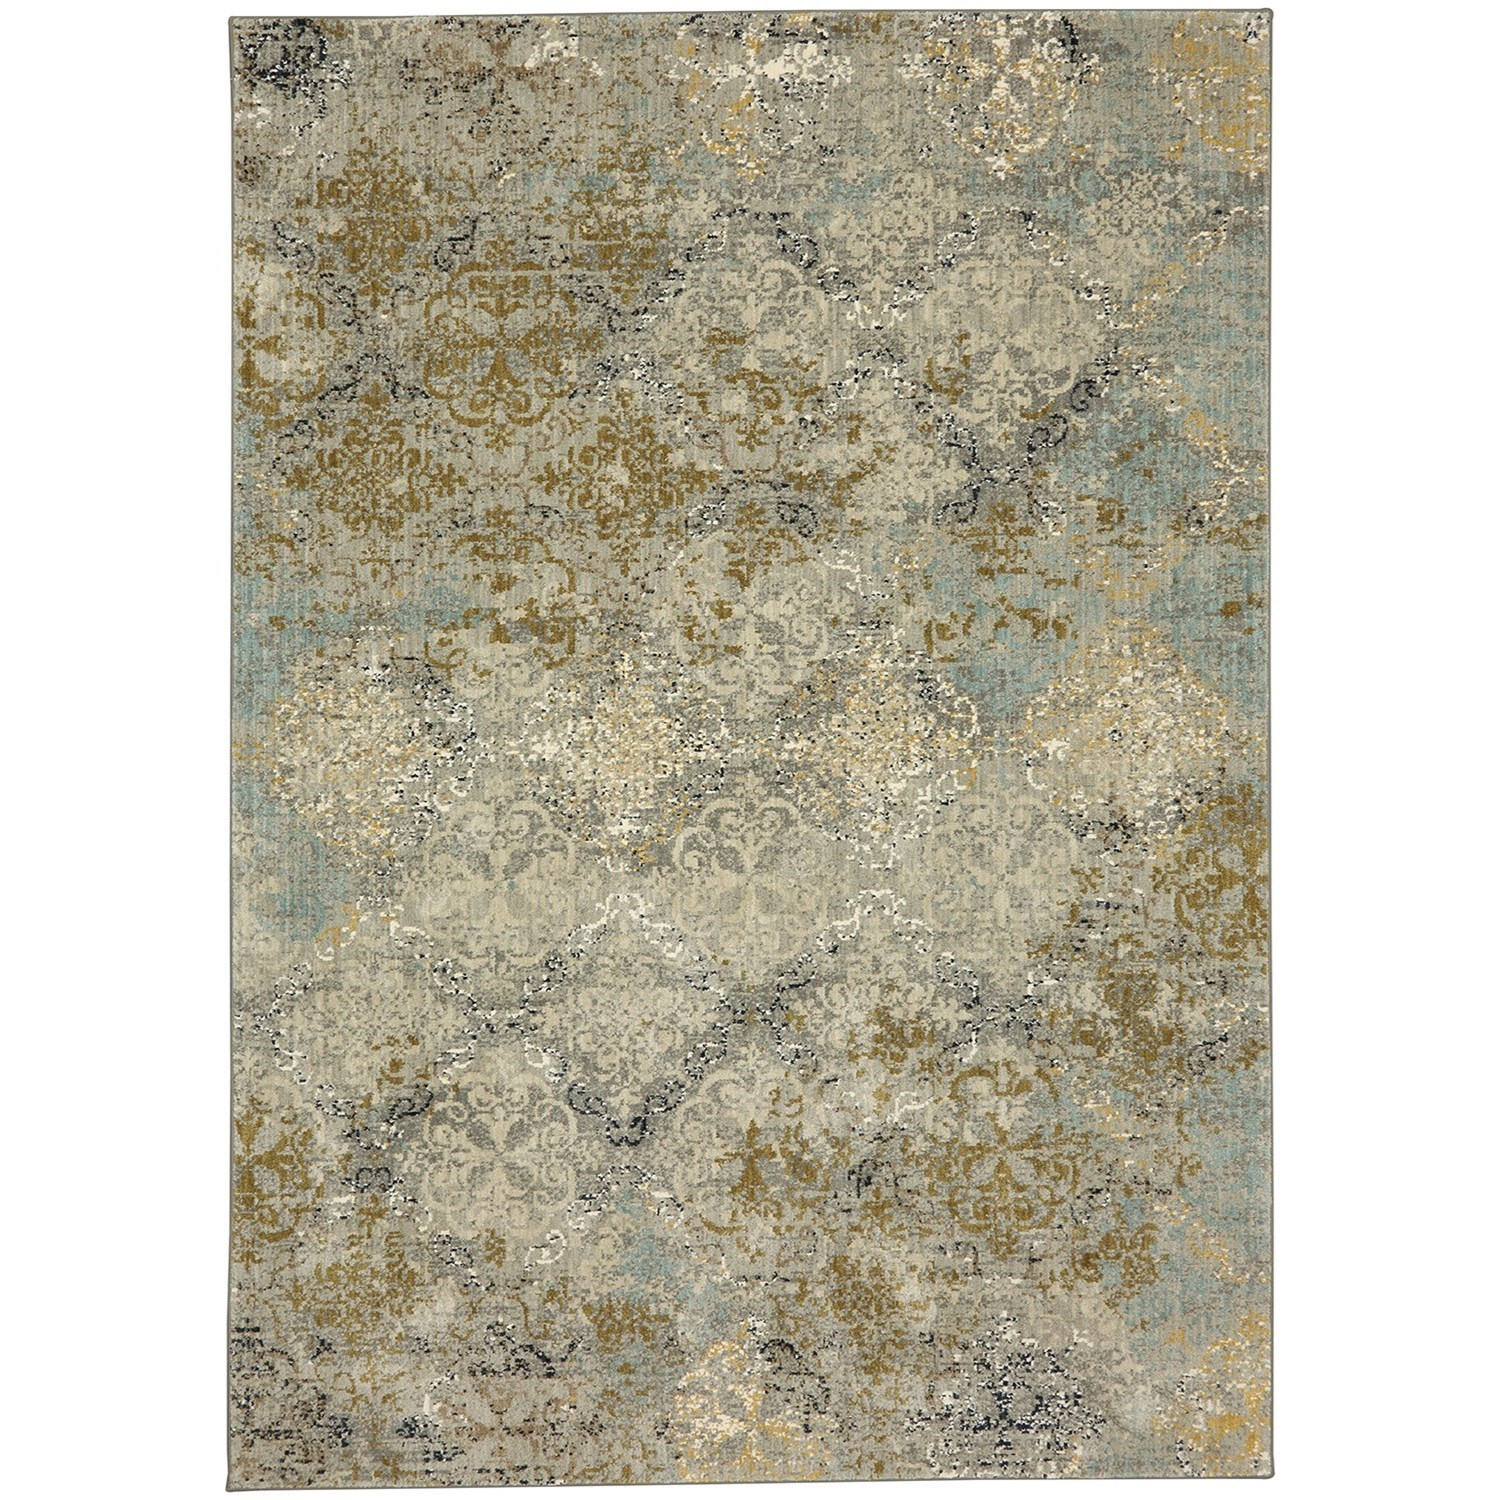 """Touchstone 3' 6""""x5' 6"""" Rectangle Ornamental Area Rug by Karastan Rugs at Darvin Furniture"""